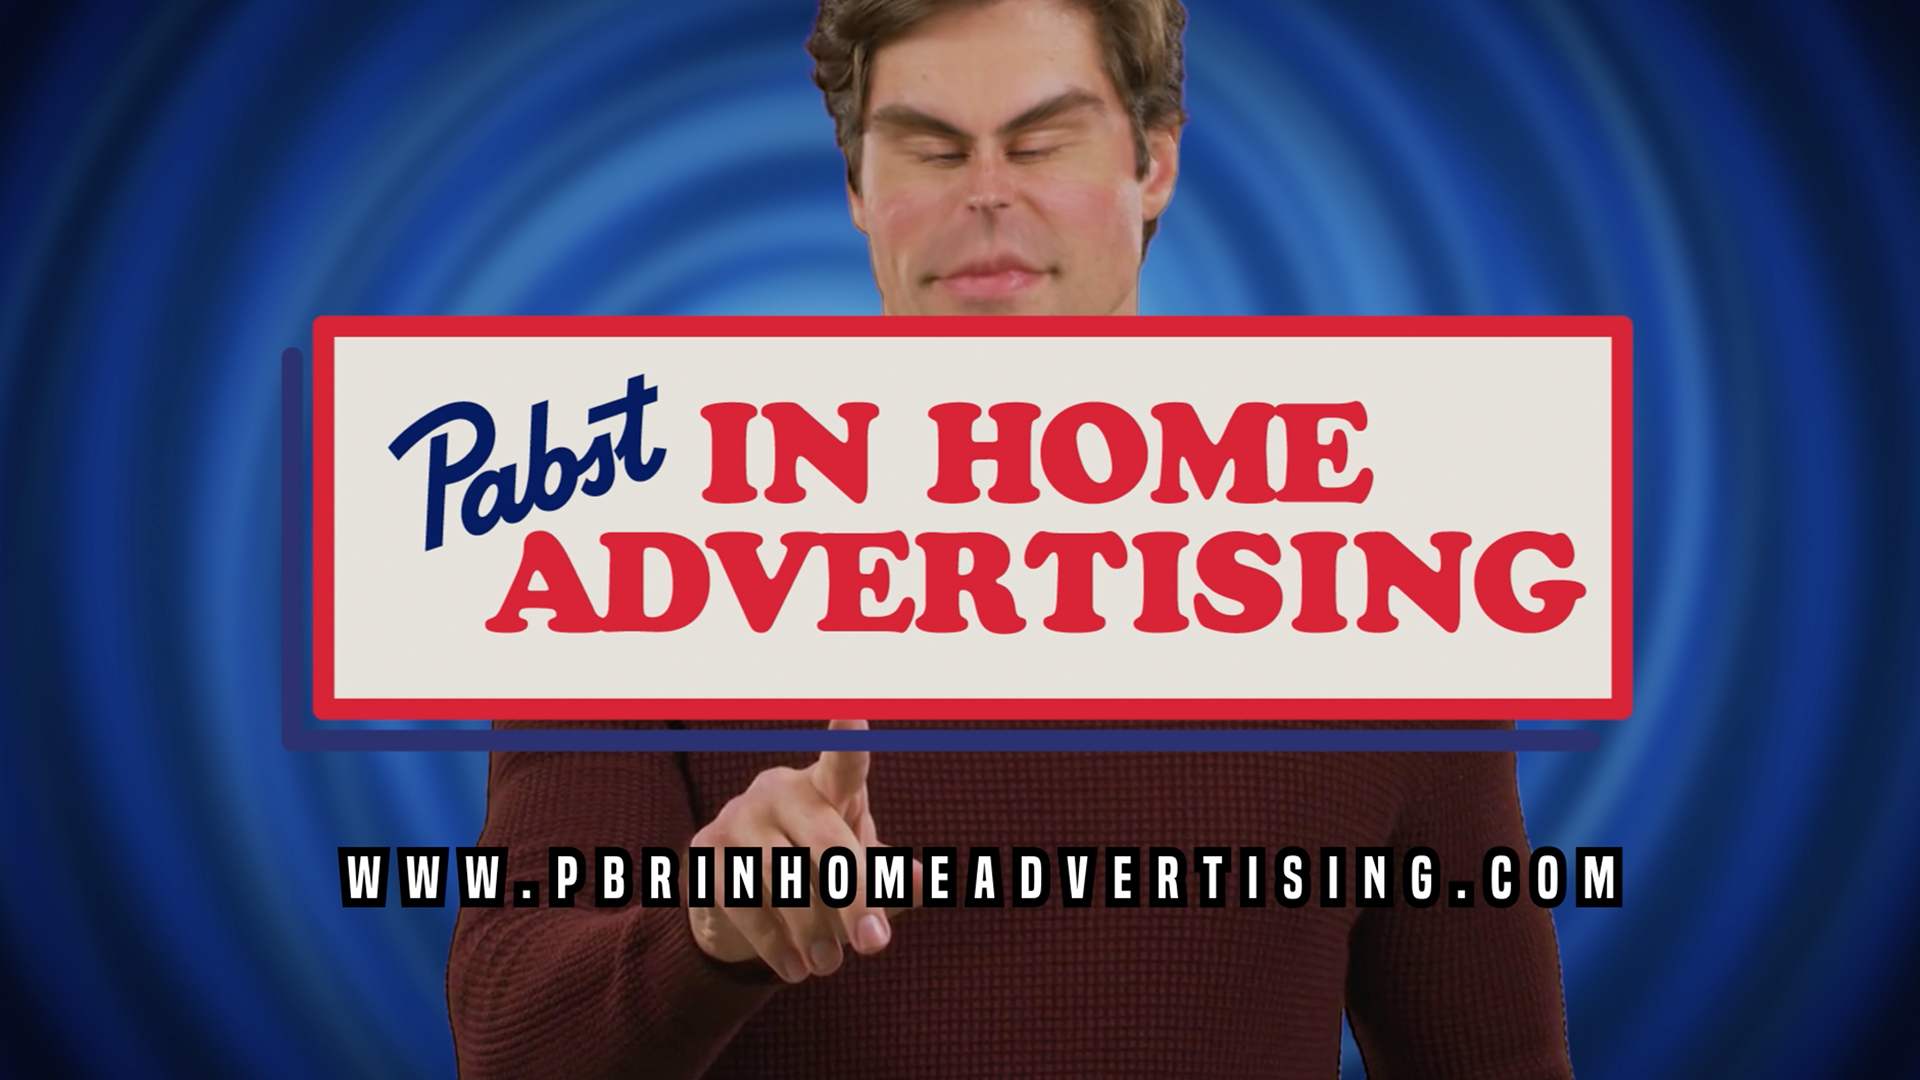 Pabst In-Home Advertising 2021